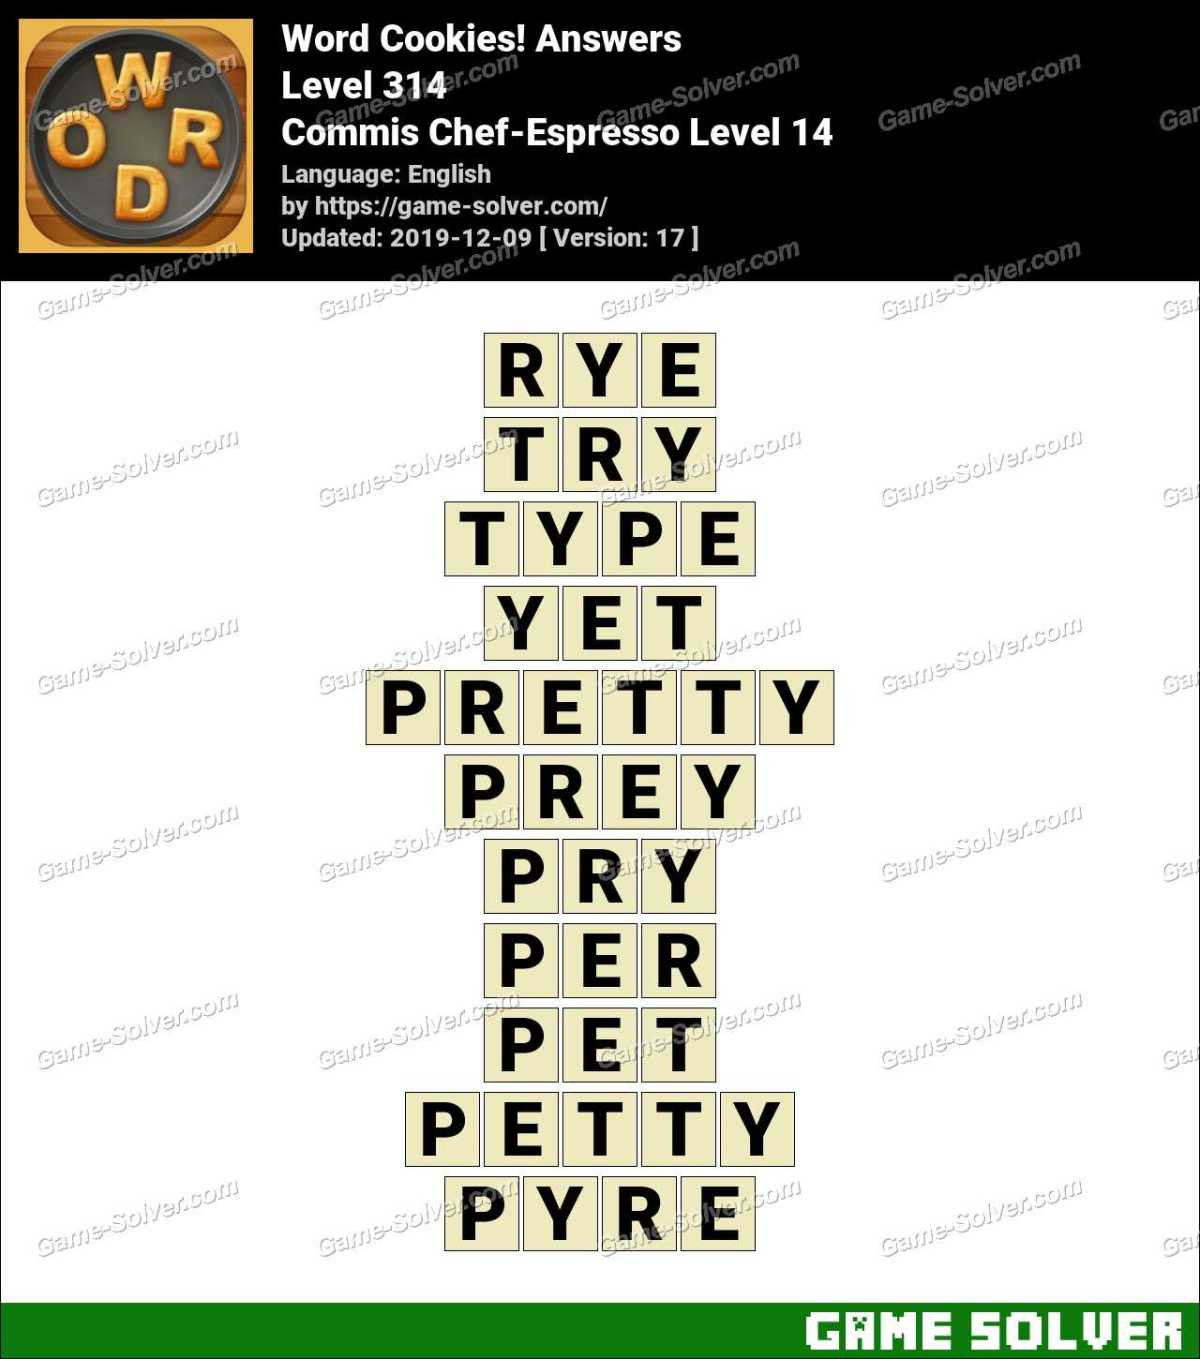 Word Cookies Commis Chef-Espresso Level 14 Answers